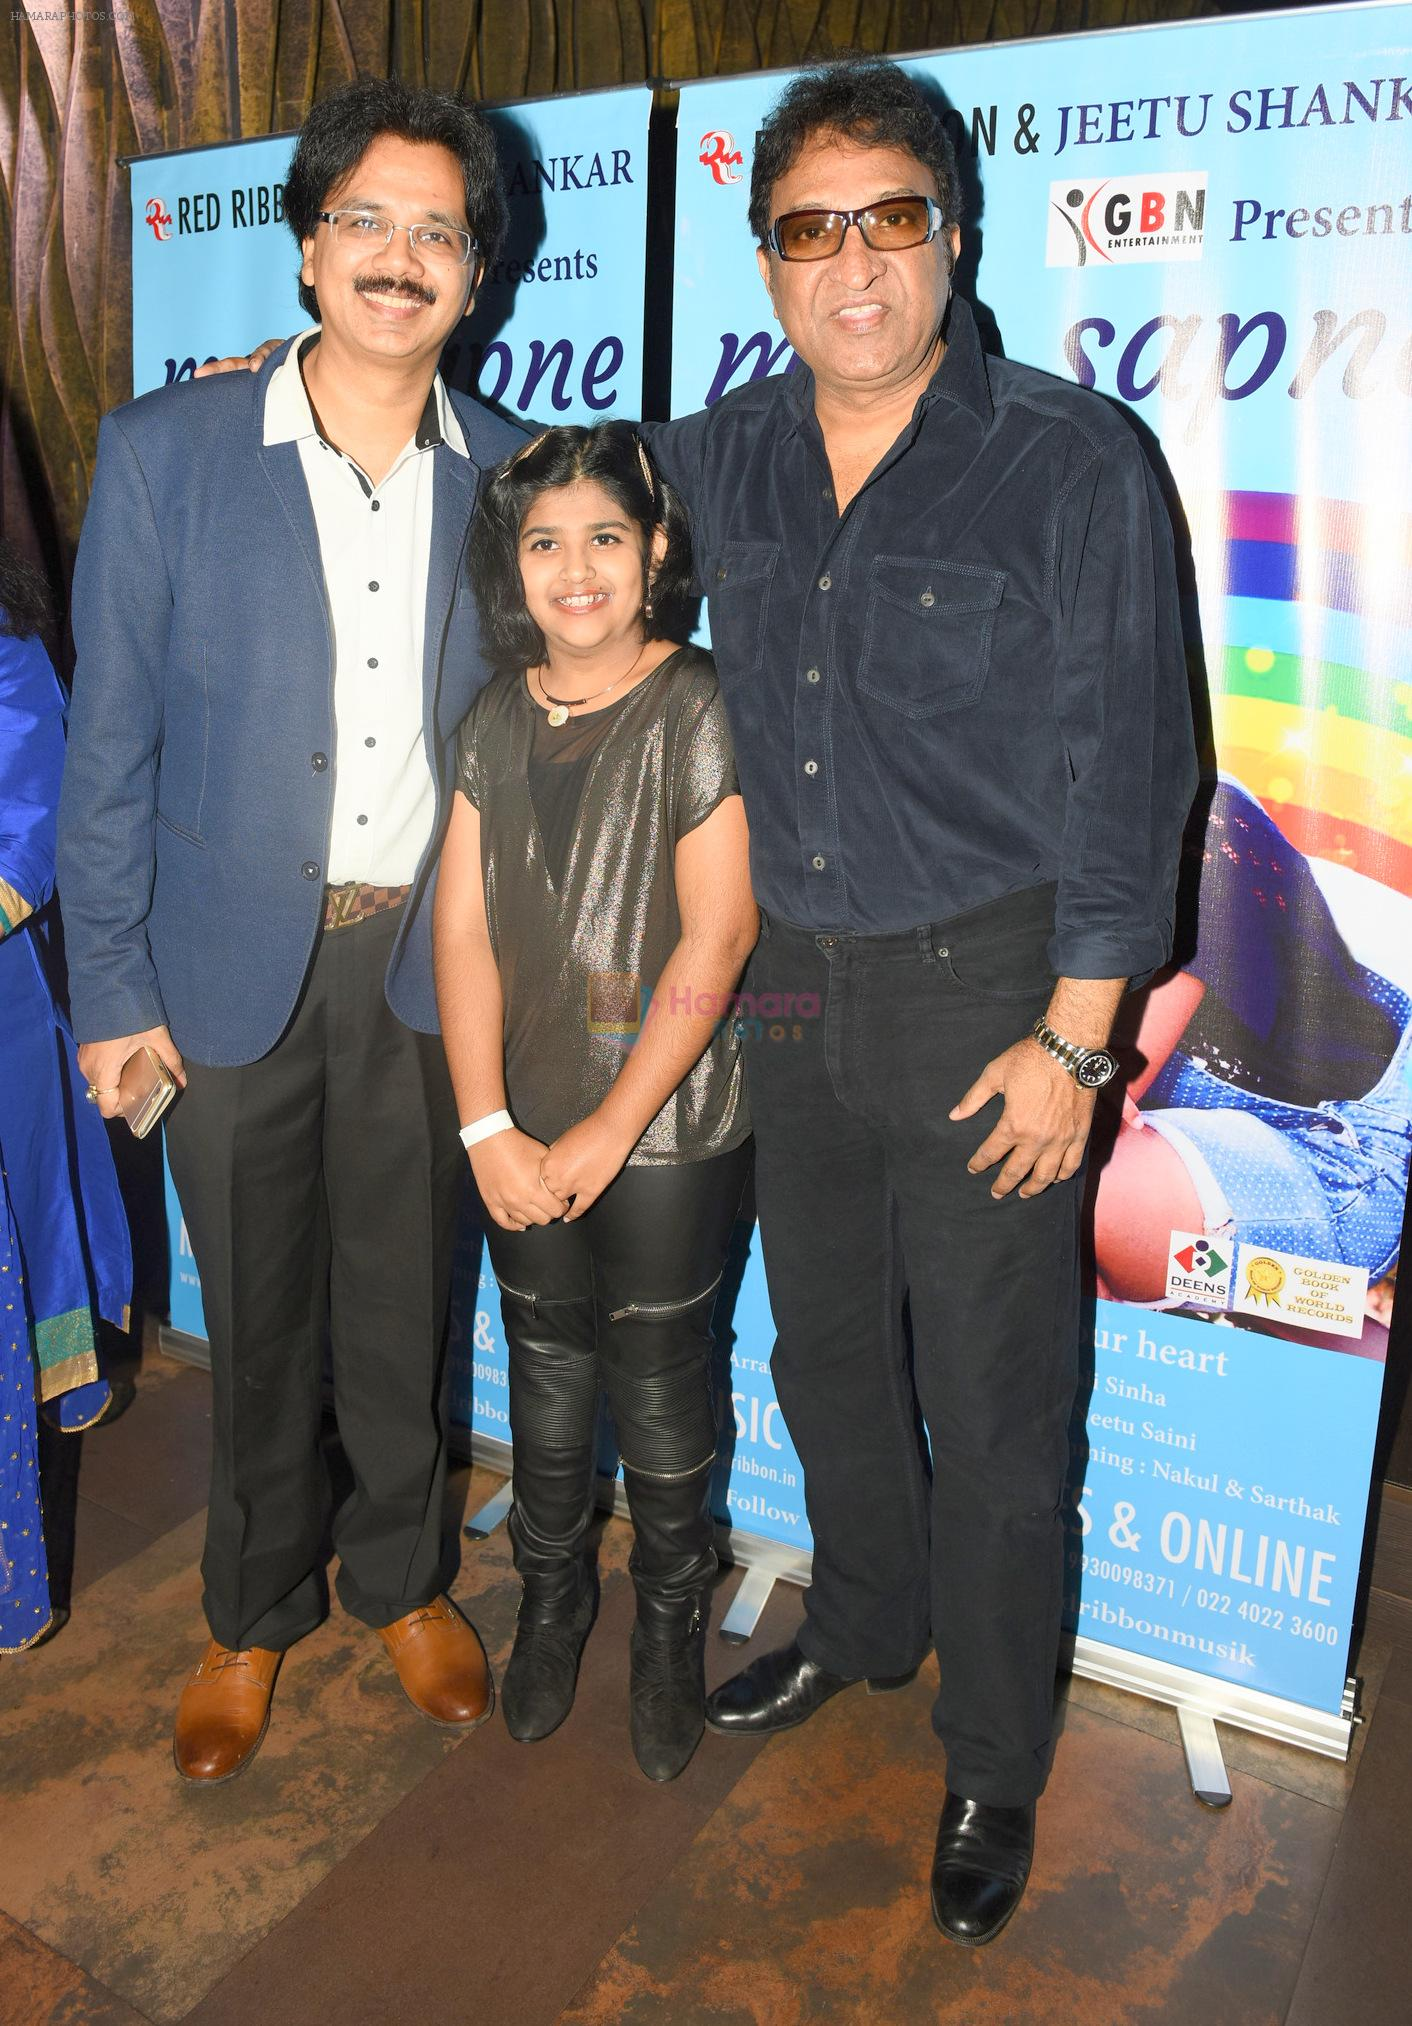 Jeetu  Shankar with Pranjali Sinha and Dilip Sen at the Launch of Youngest Music Composer in Golden Book of World Records 2016 Pranjali Sinha's new album MERE SAPNE